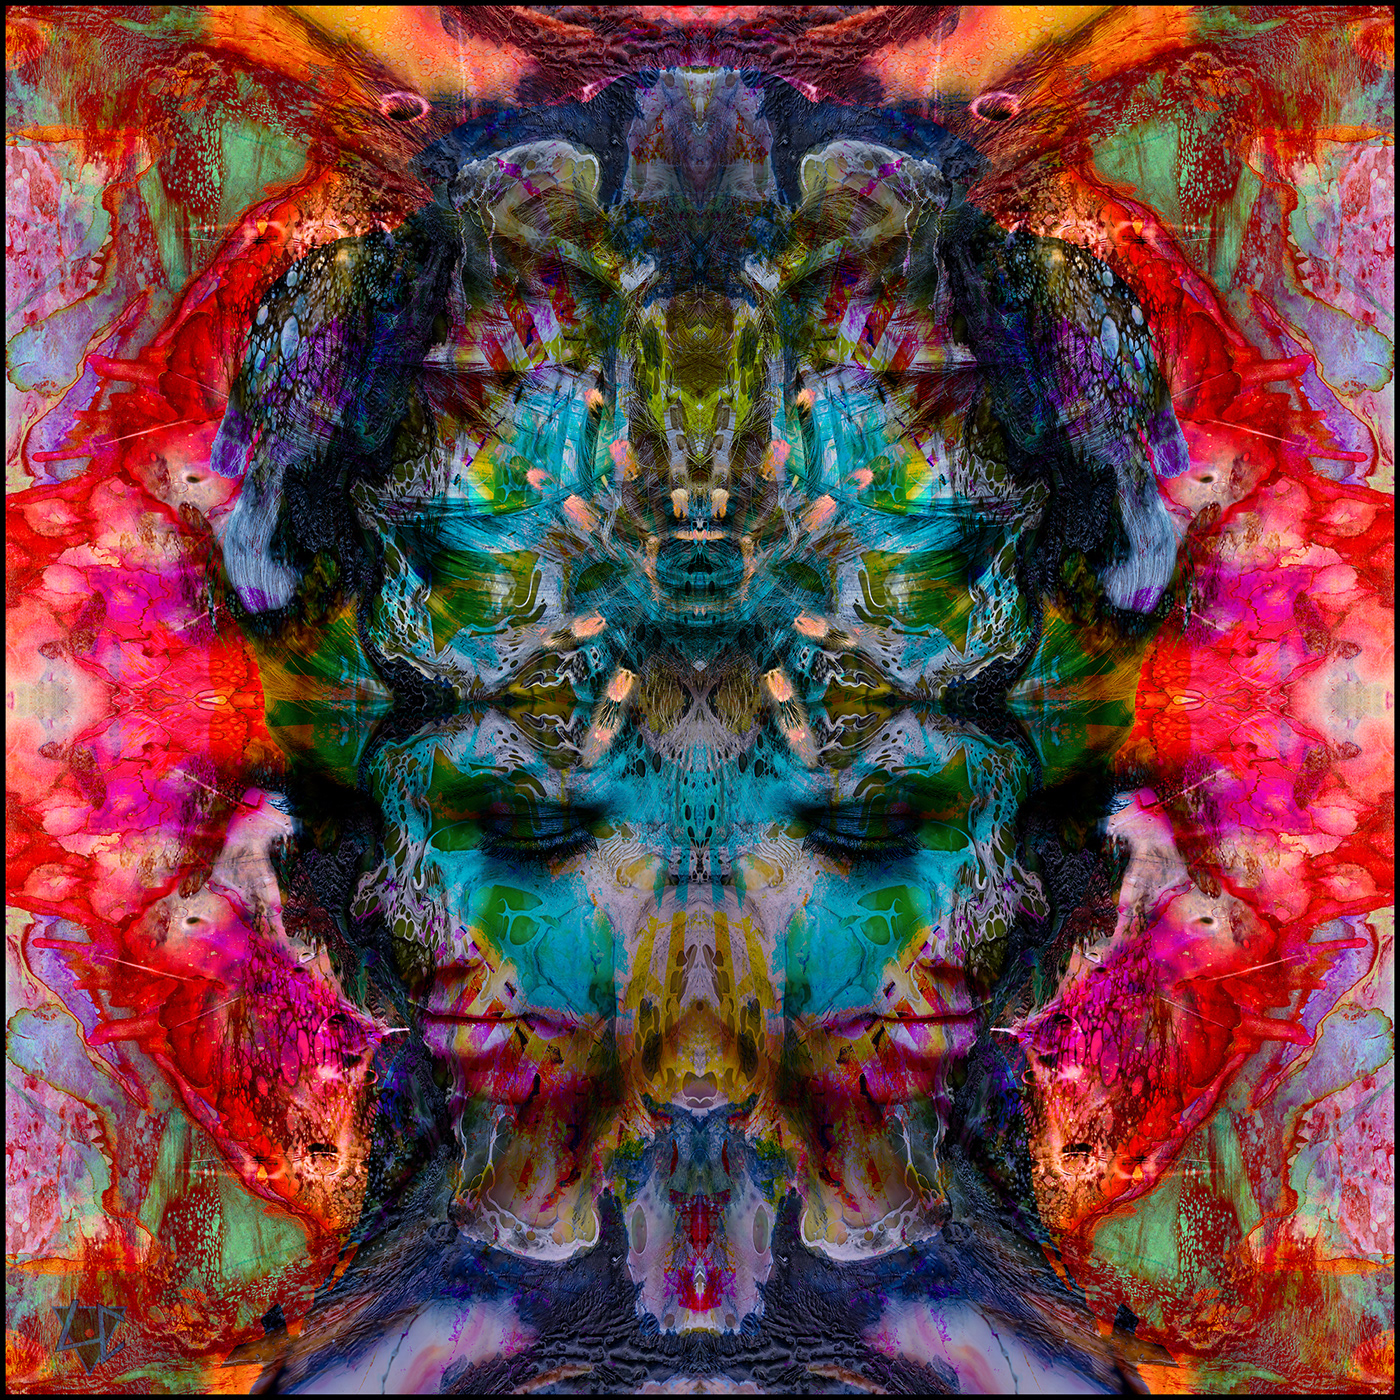 Photo Montage digitalart Digital Collage photo abstract Photo Manipulation  retouche photo graphisme Digital abstract symmetry